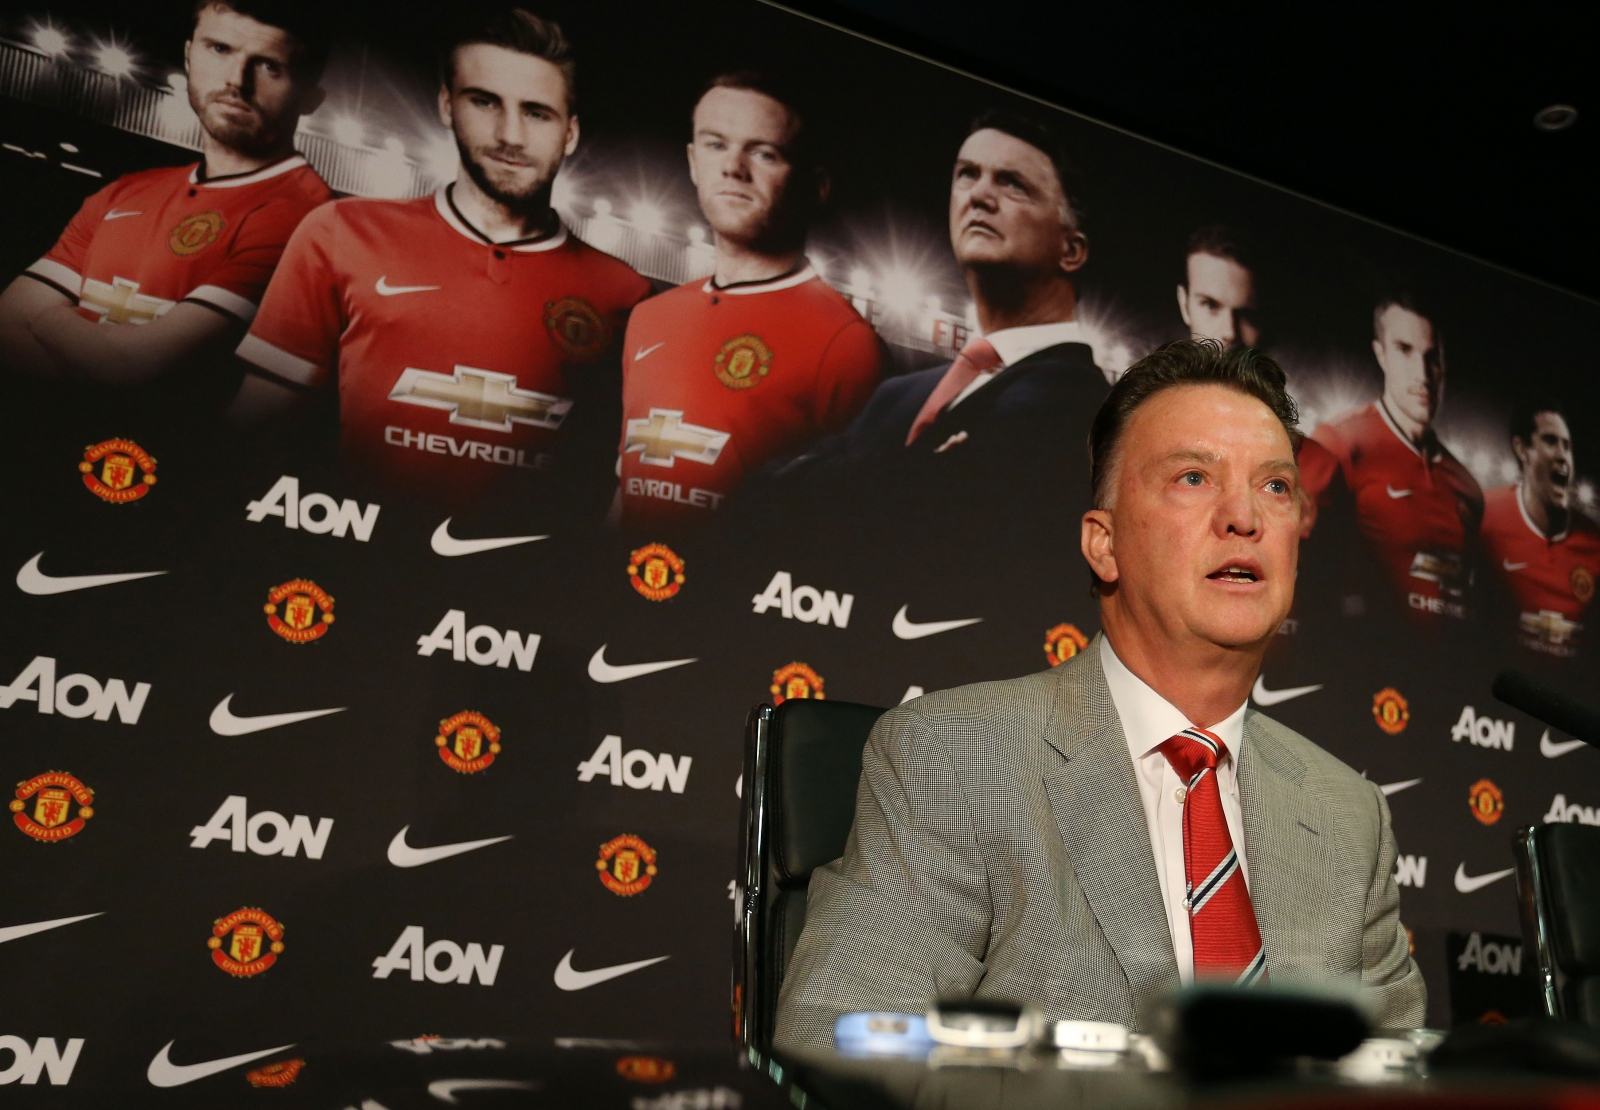 Louis Van Gaal V David Moyes In Quotes